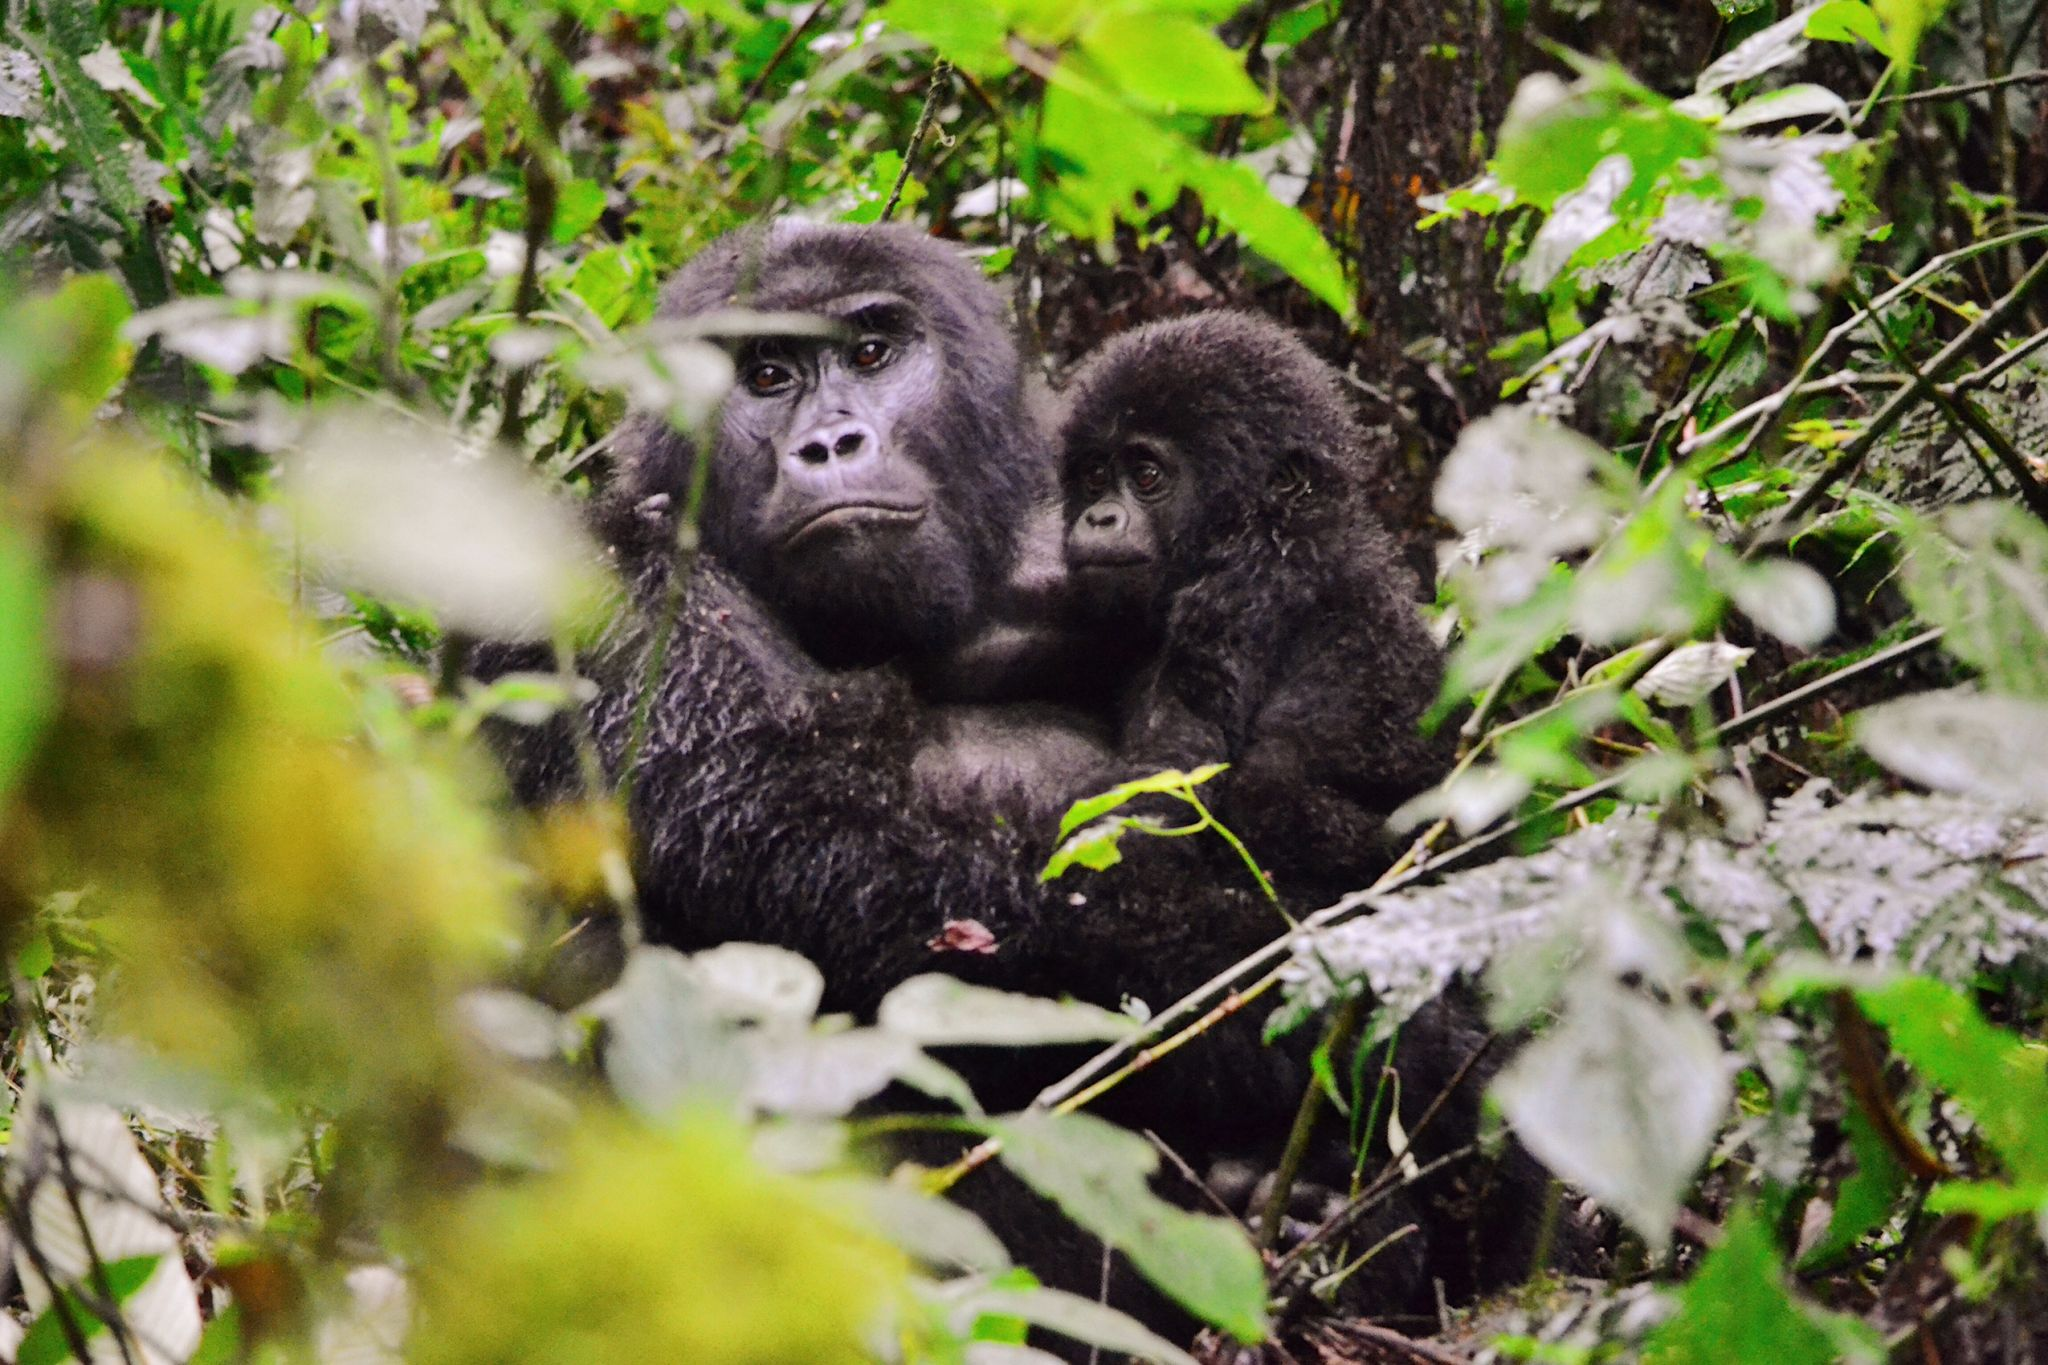 mother and infant gorilla seen gorilla trekking in Uganda